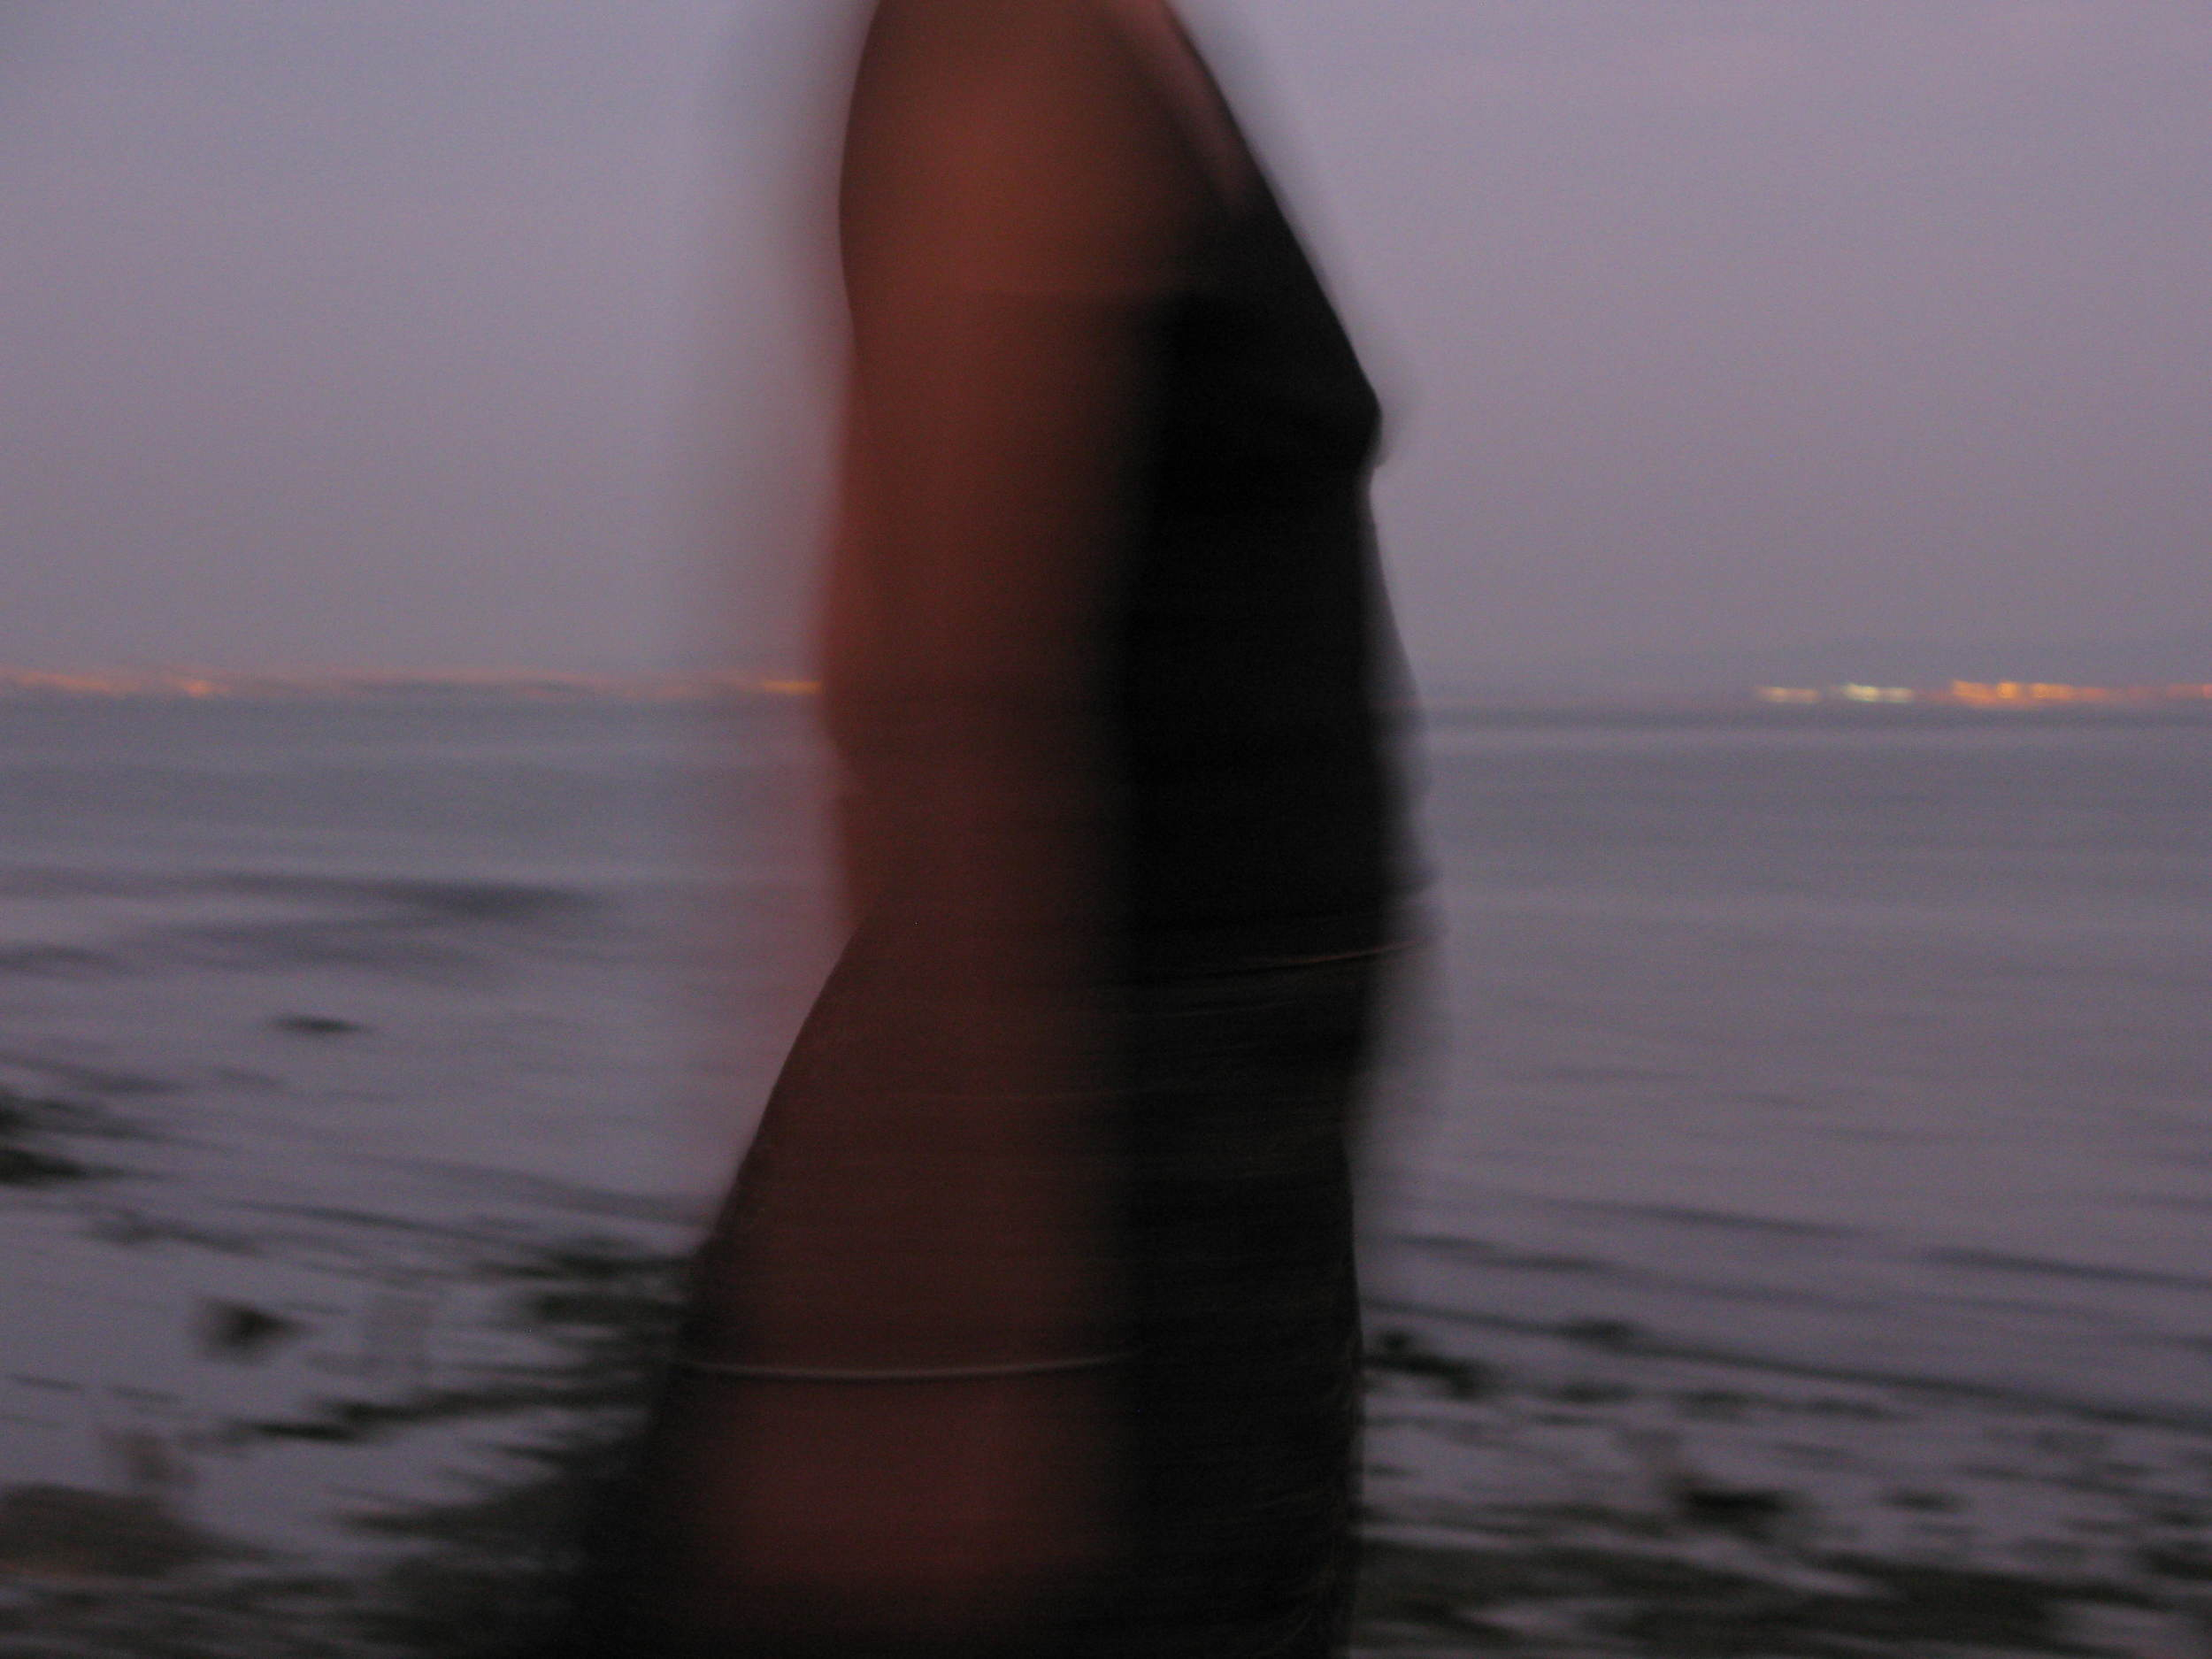 Body of Time 4, Sofia Varino, Photography, 12 x 15, $100.jpg